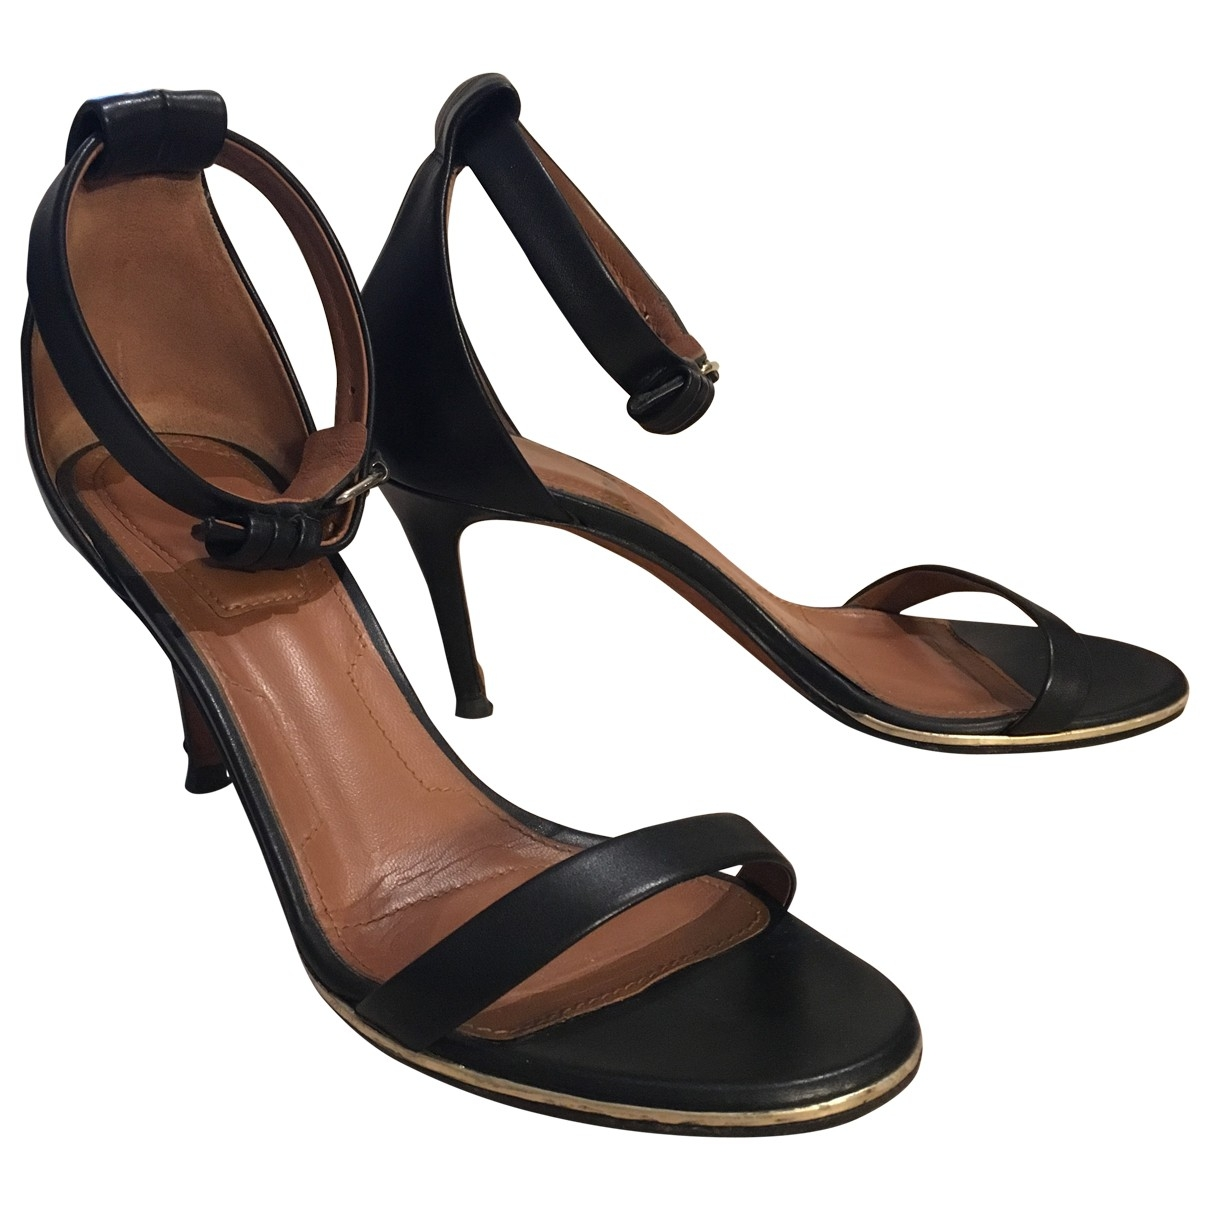 Givenchy \N Black Leather Sandals for Women 36 EU